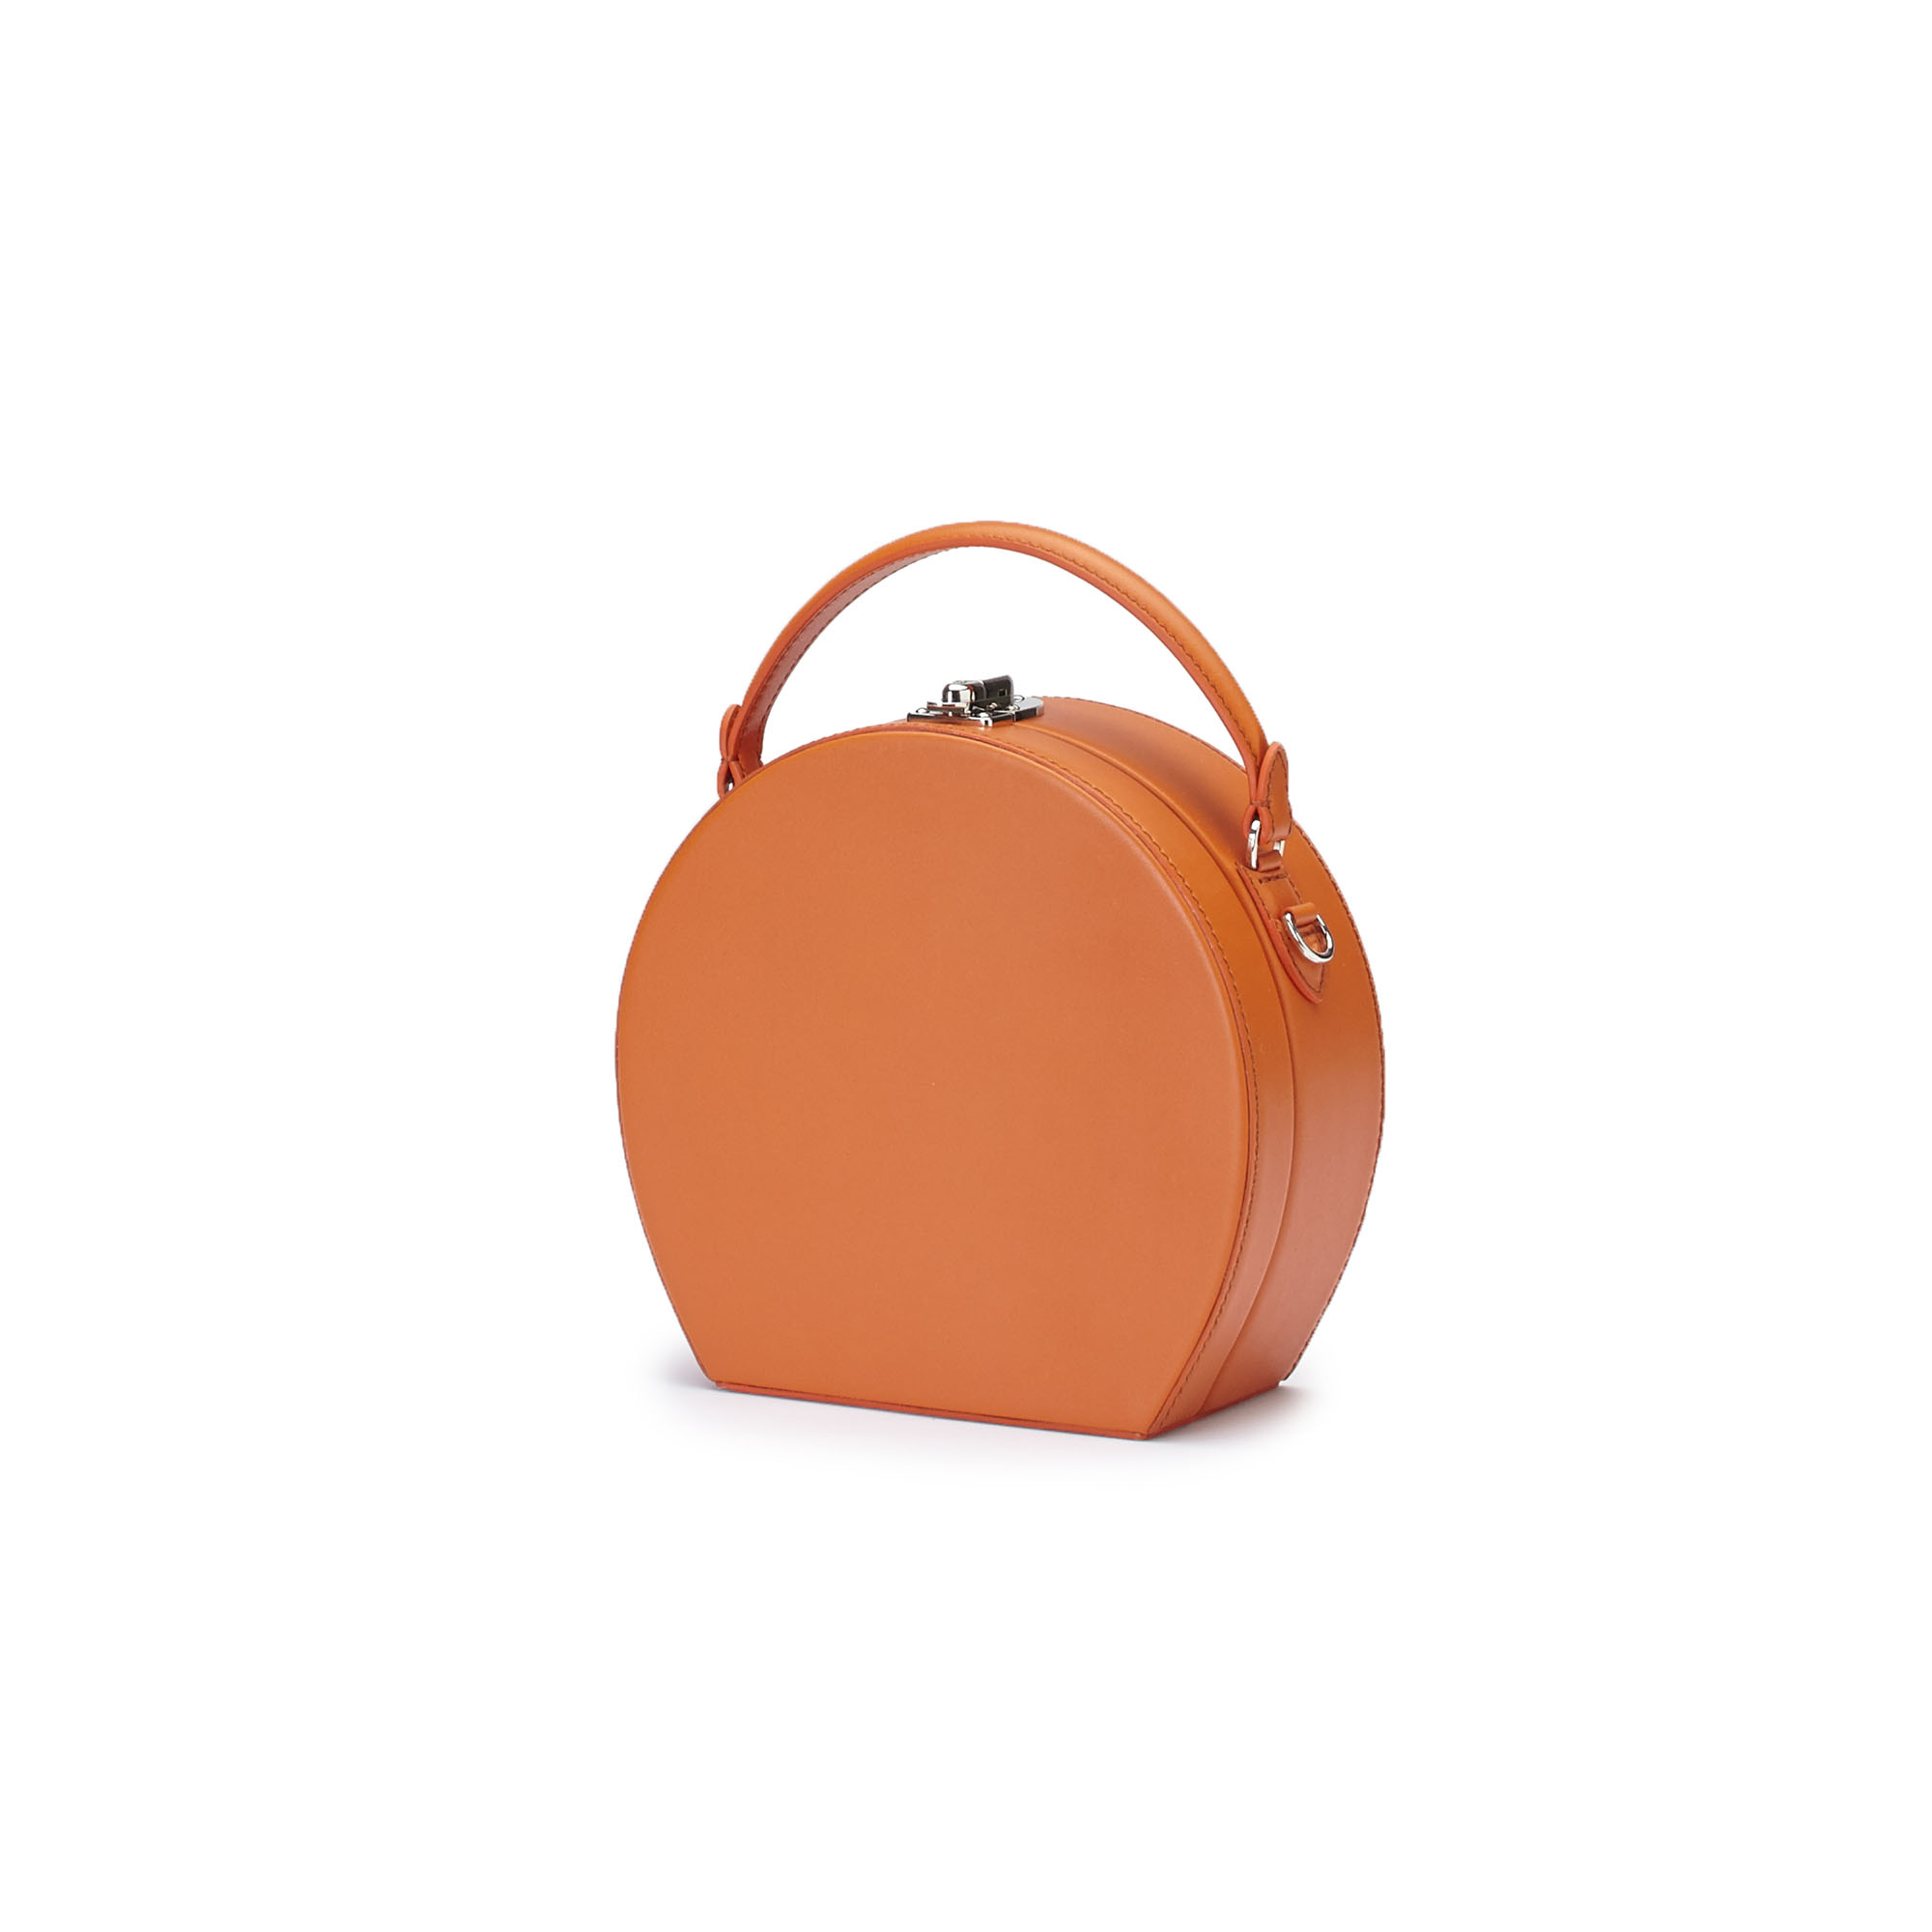 The orange french calf Regular Bertoncina bag by Bertoni 1949 02